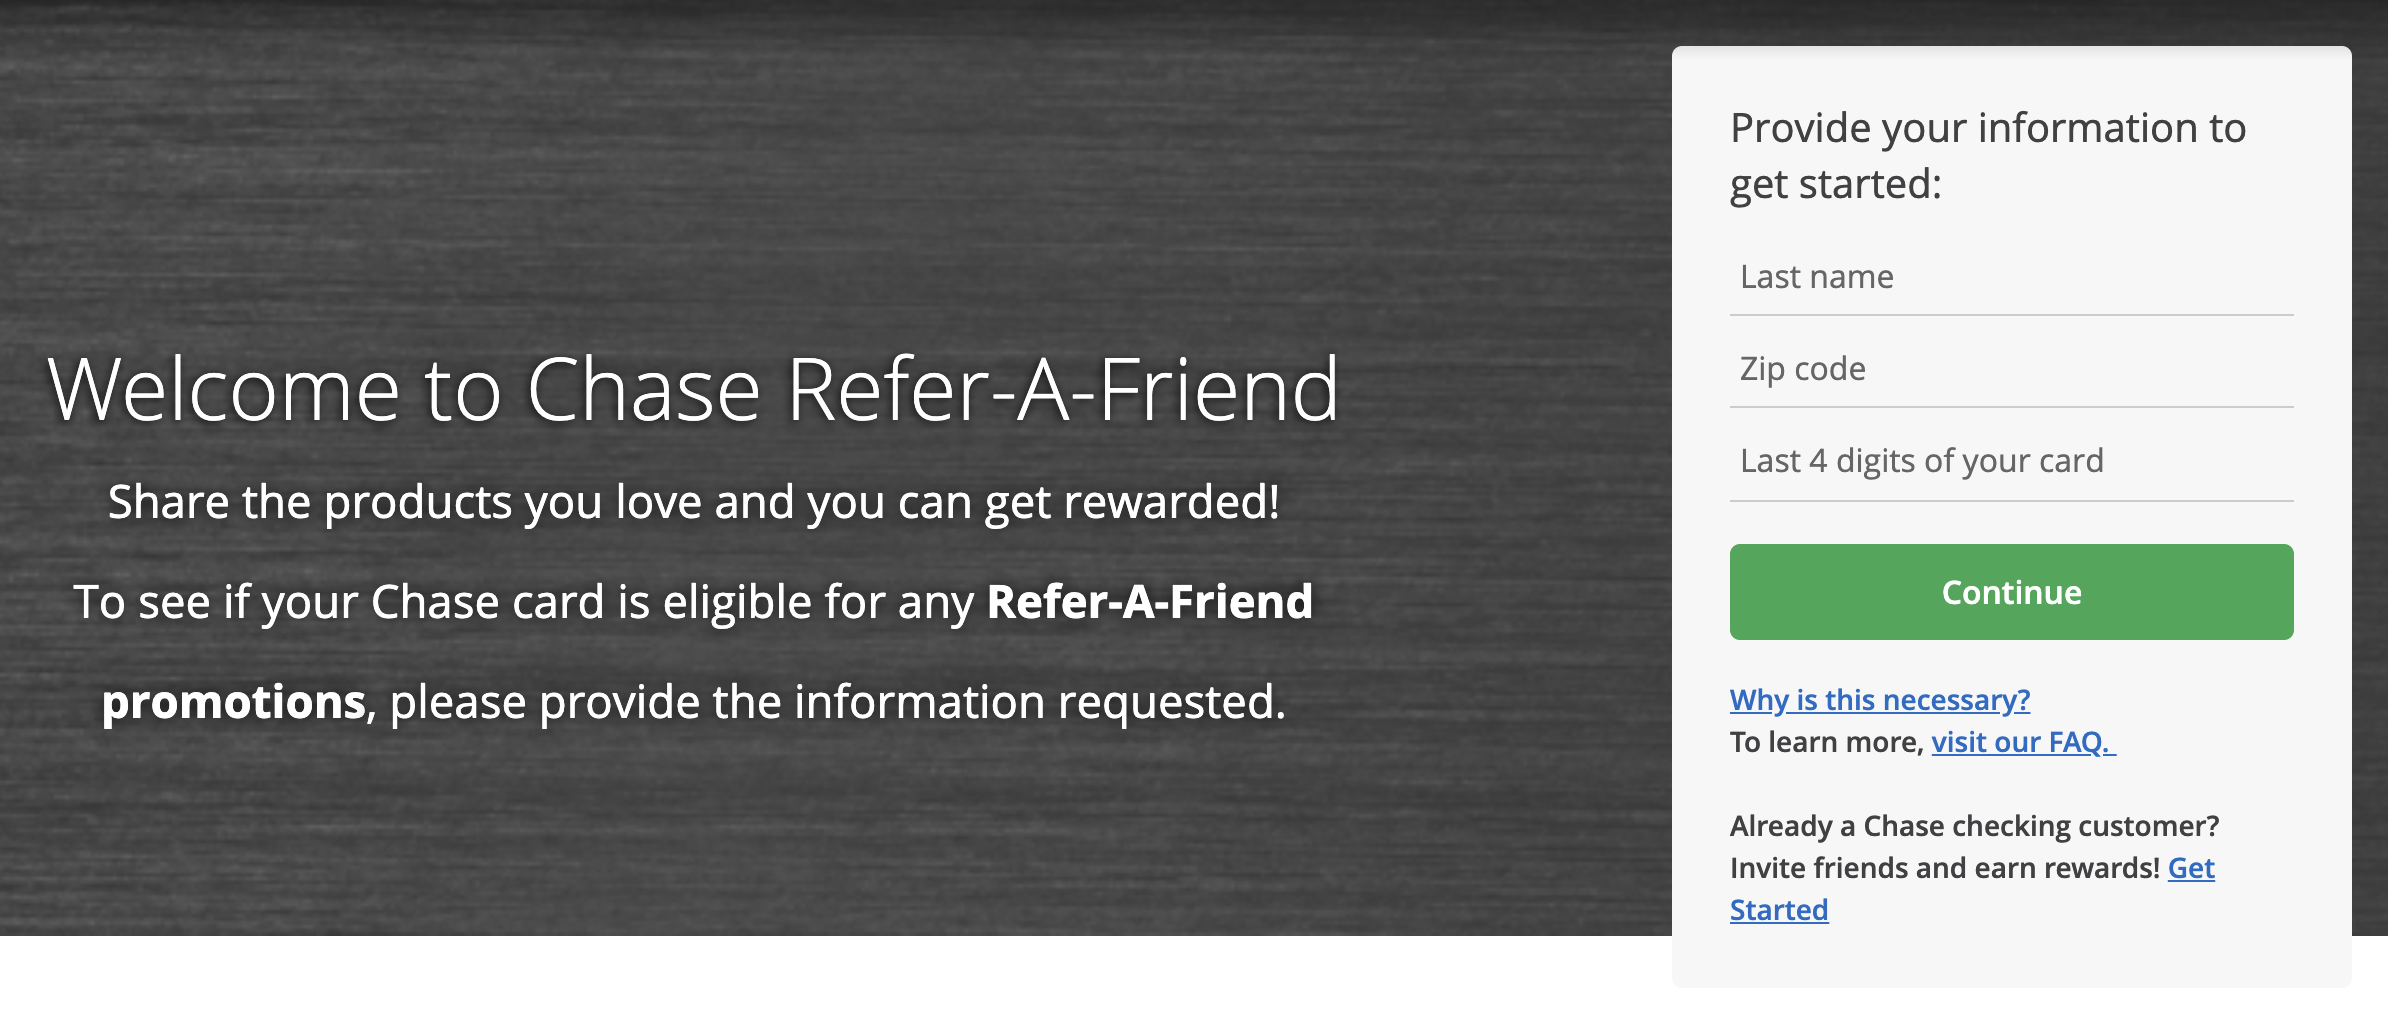 Chase Refer a Friend Catch All